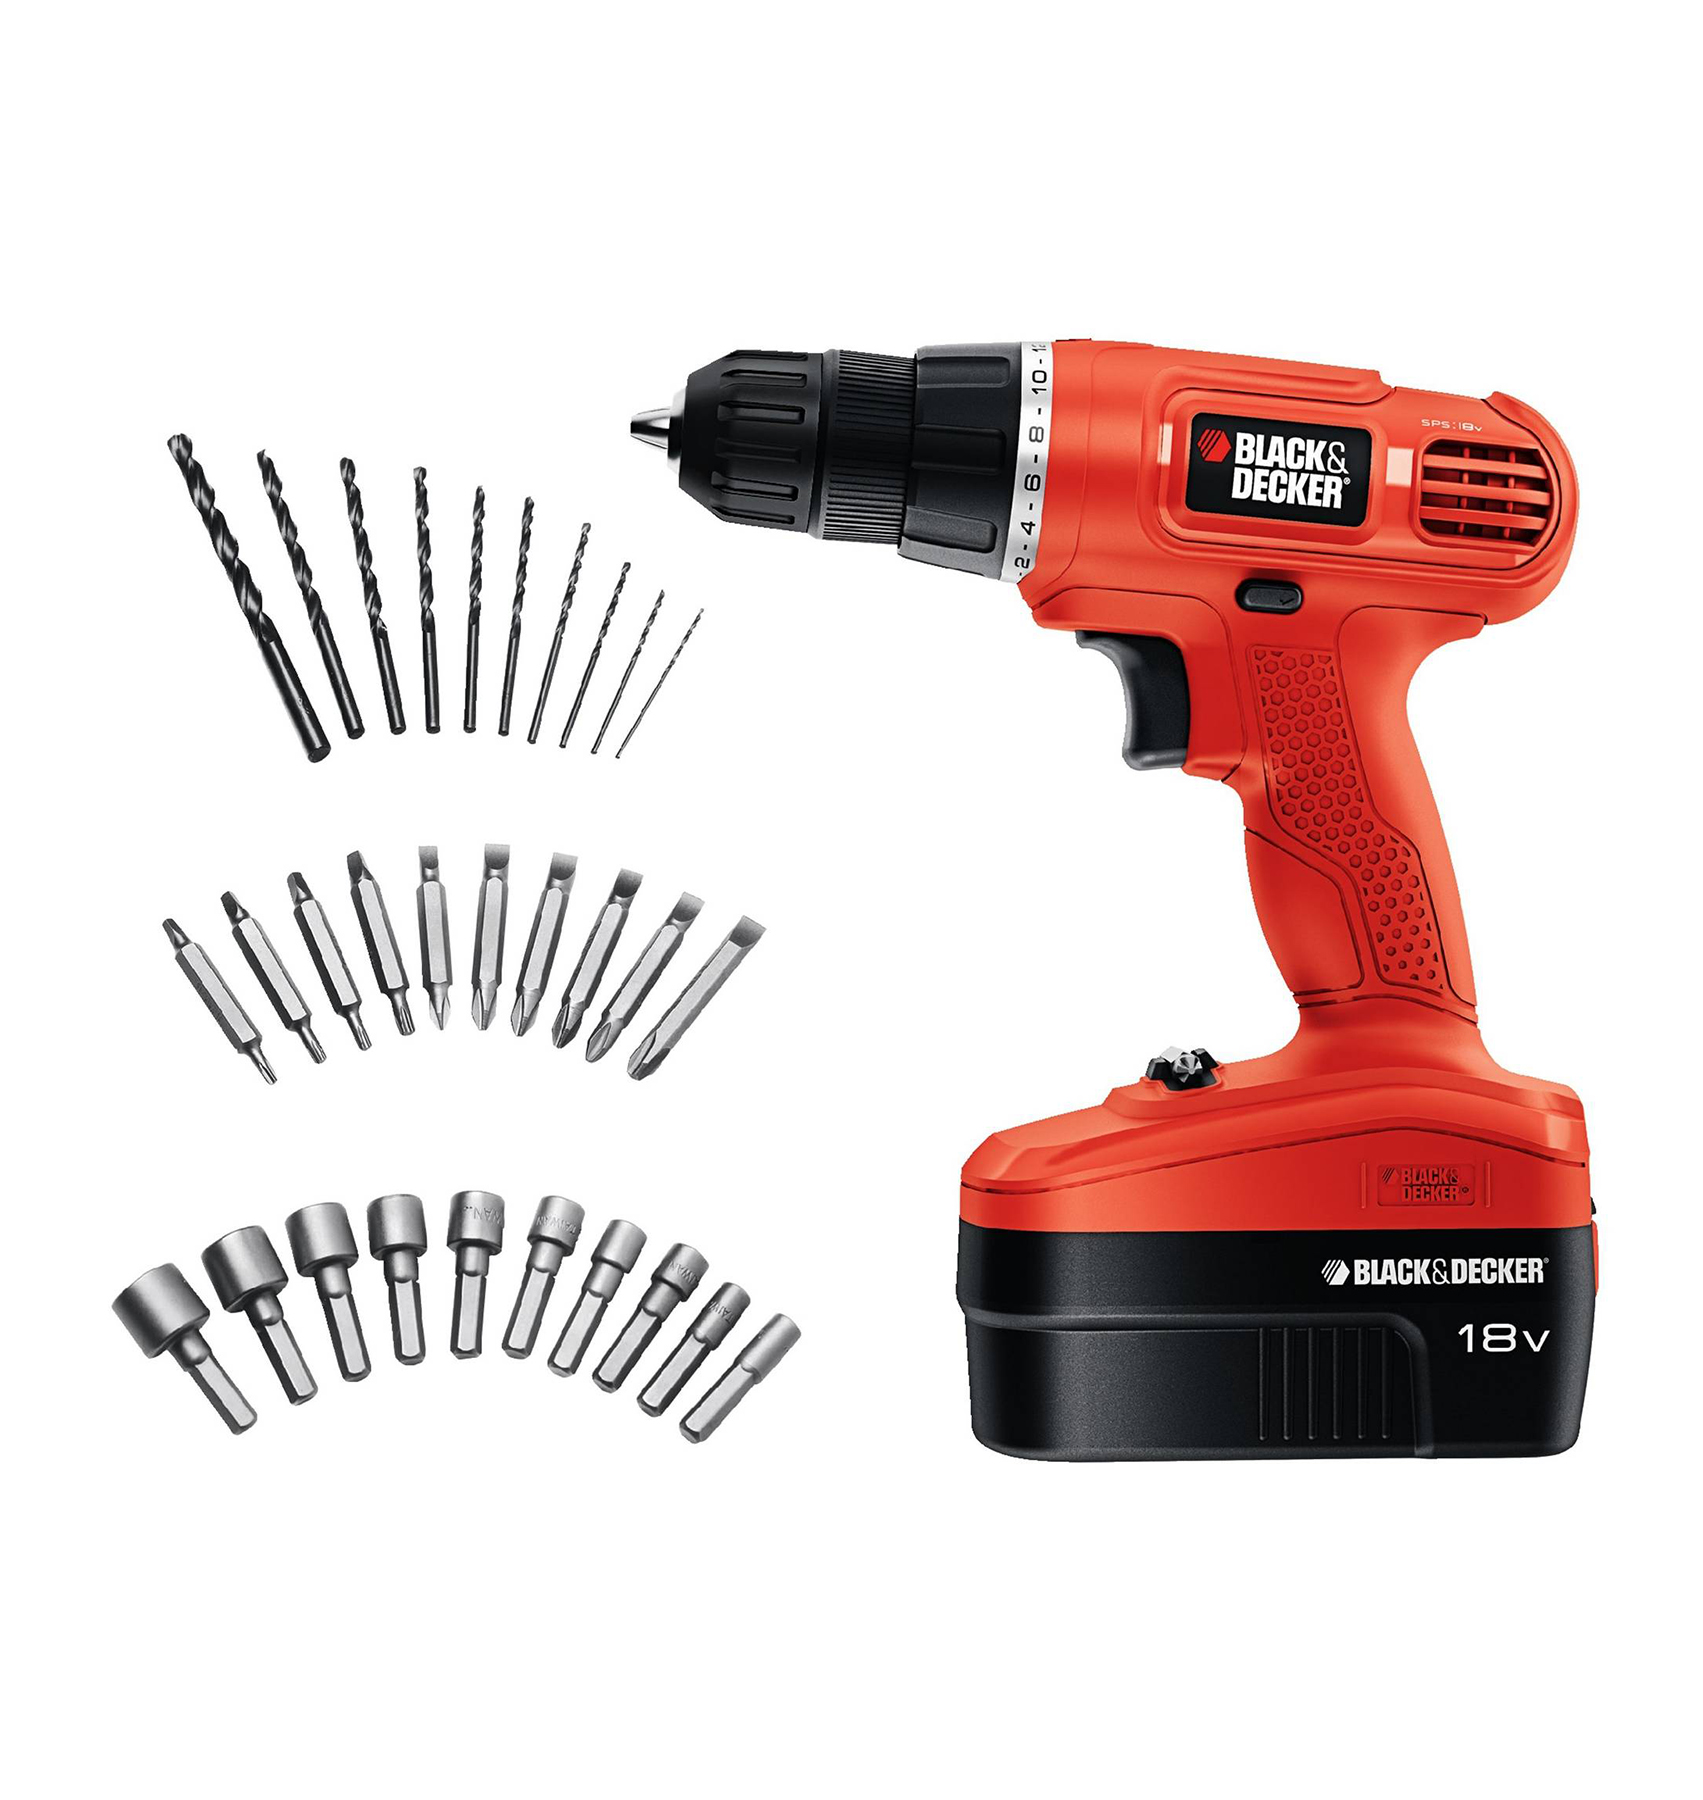 Black + Decker 18v Cordless Power Drill/Driver with 30 Bonus Accessories